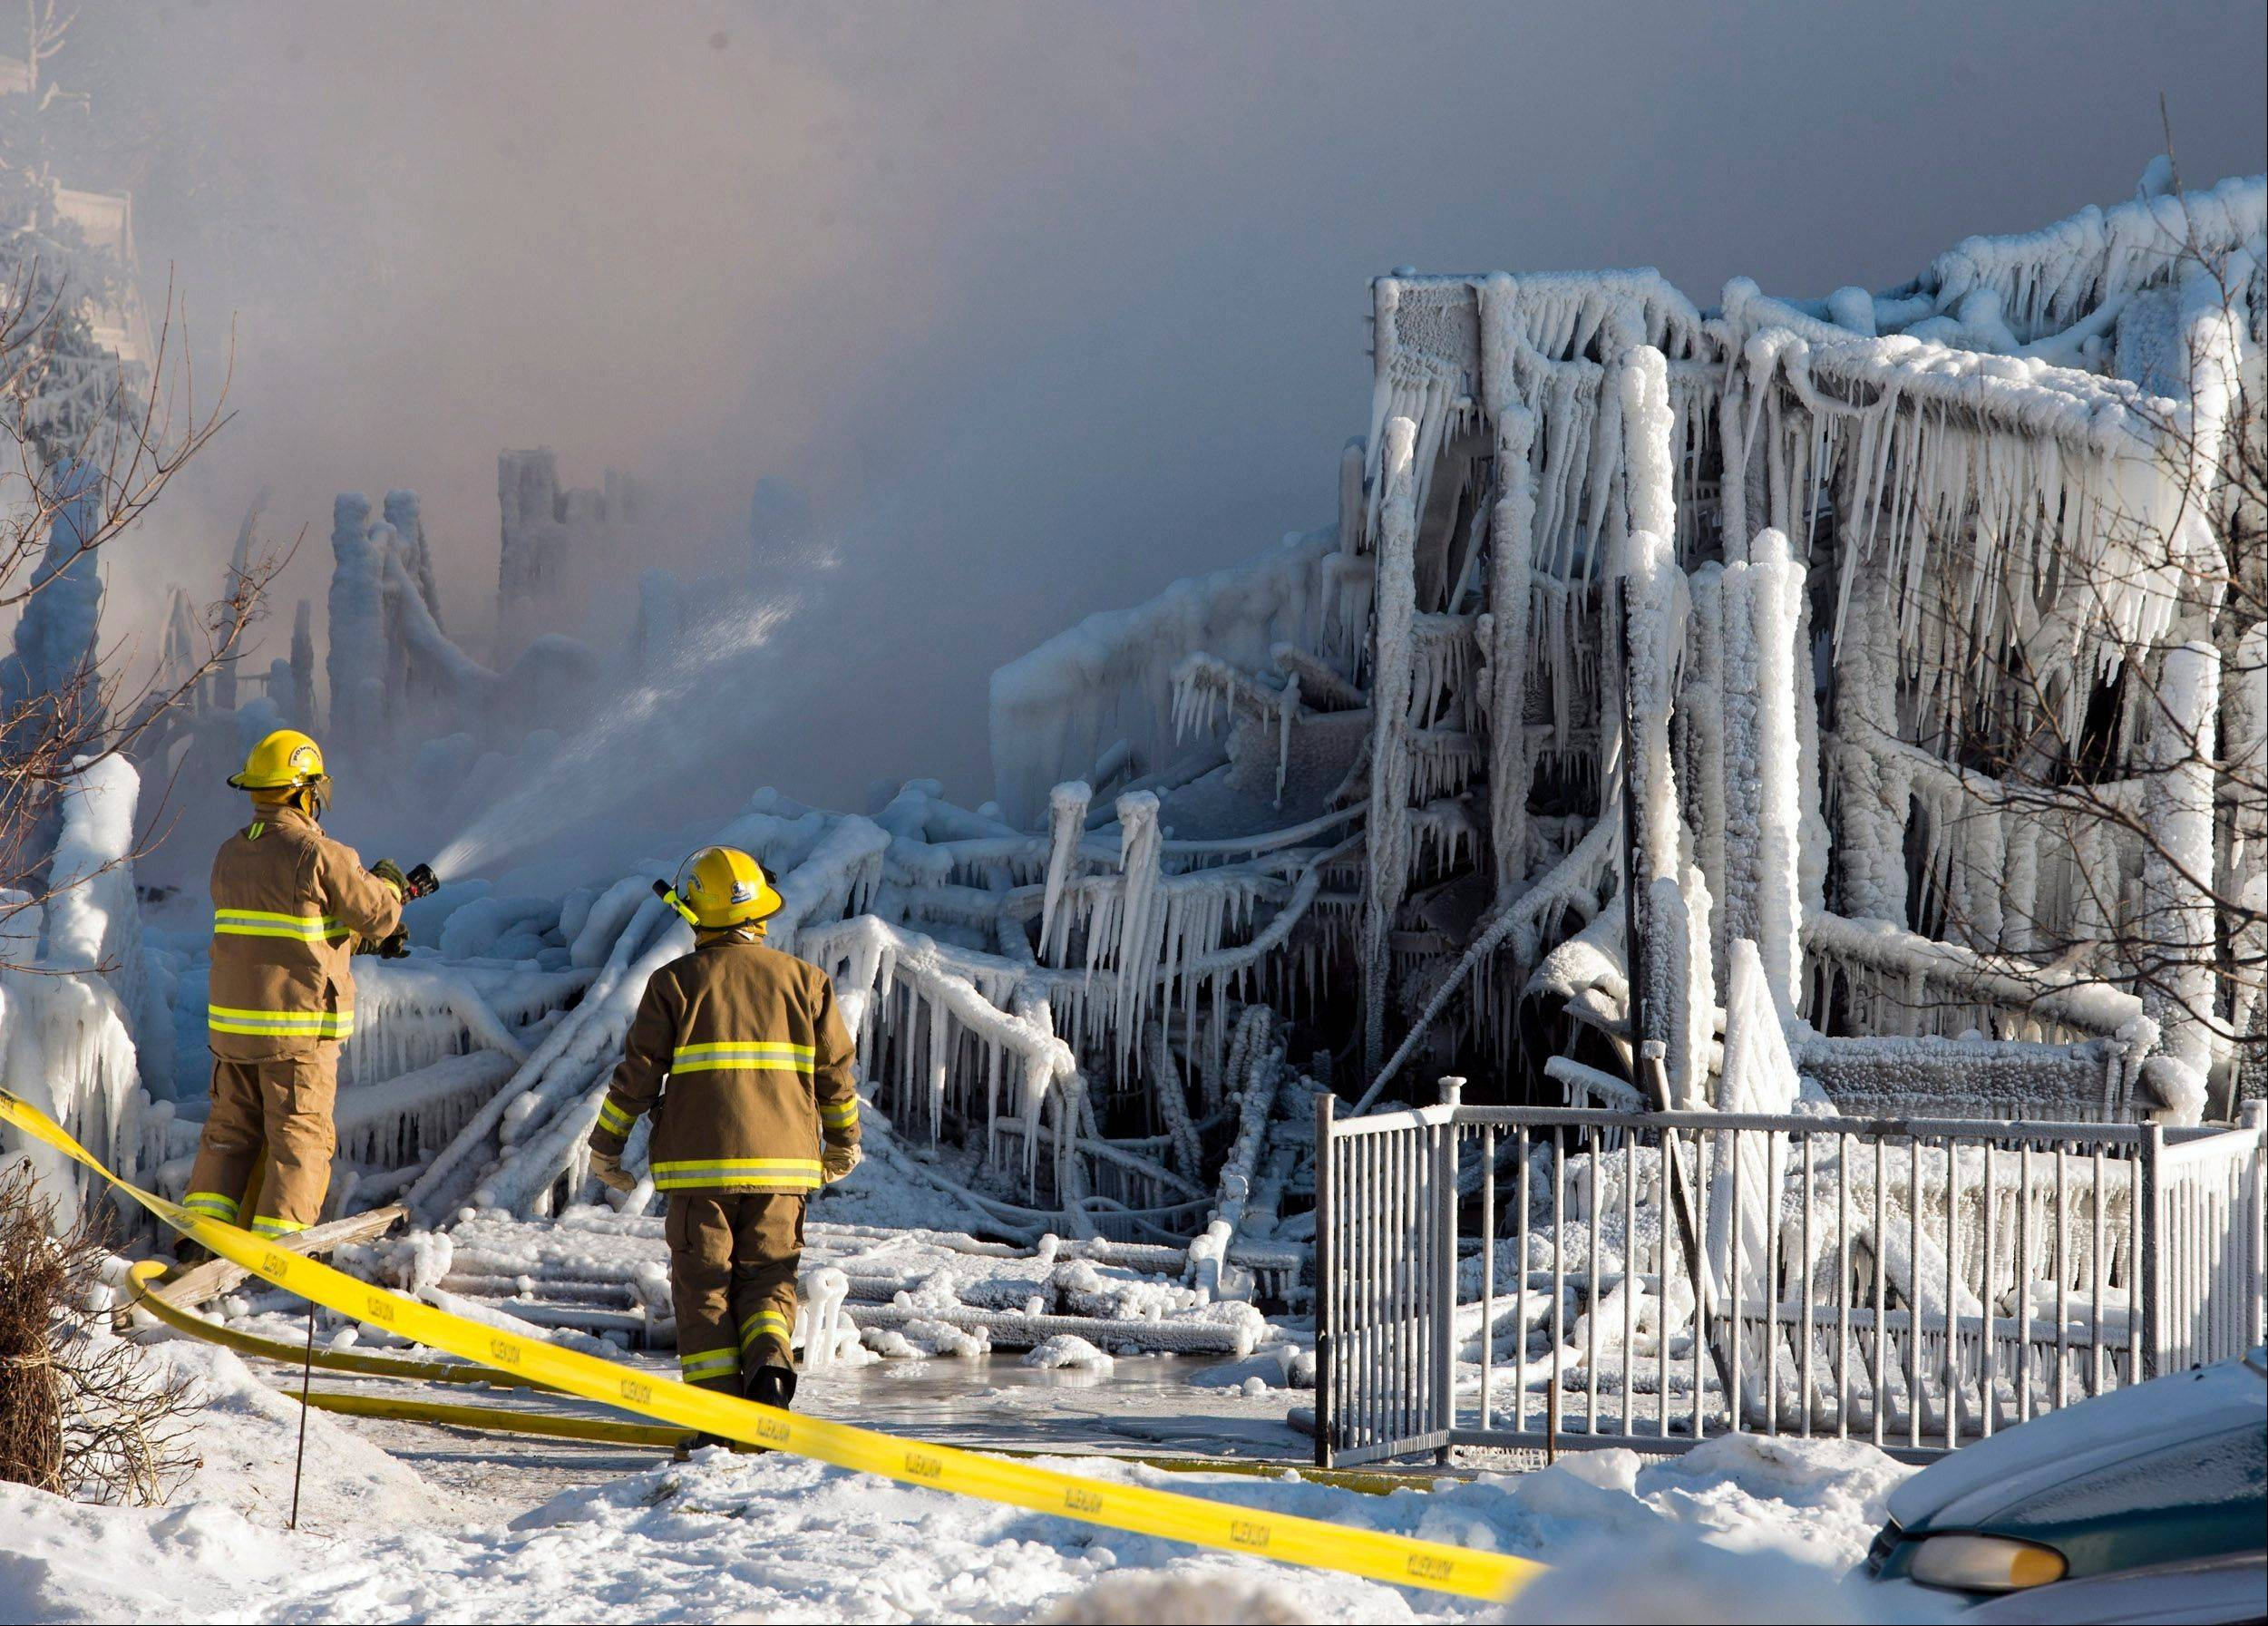 Death toll expected to climb in Quebec senior home fire